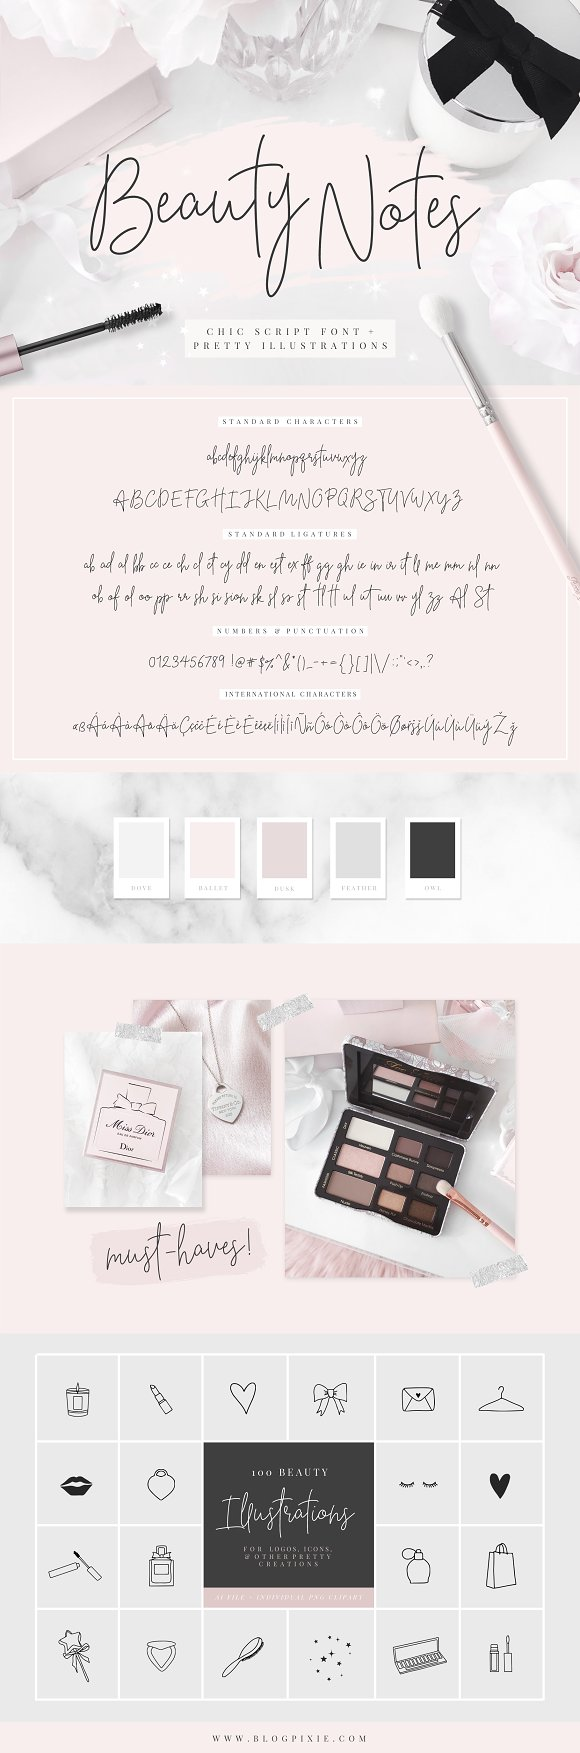 Beauty Notes Script + Illustrations in Script Fonts - product preview 14